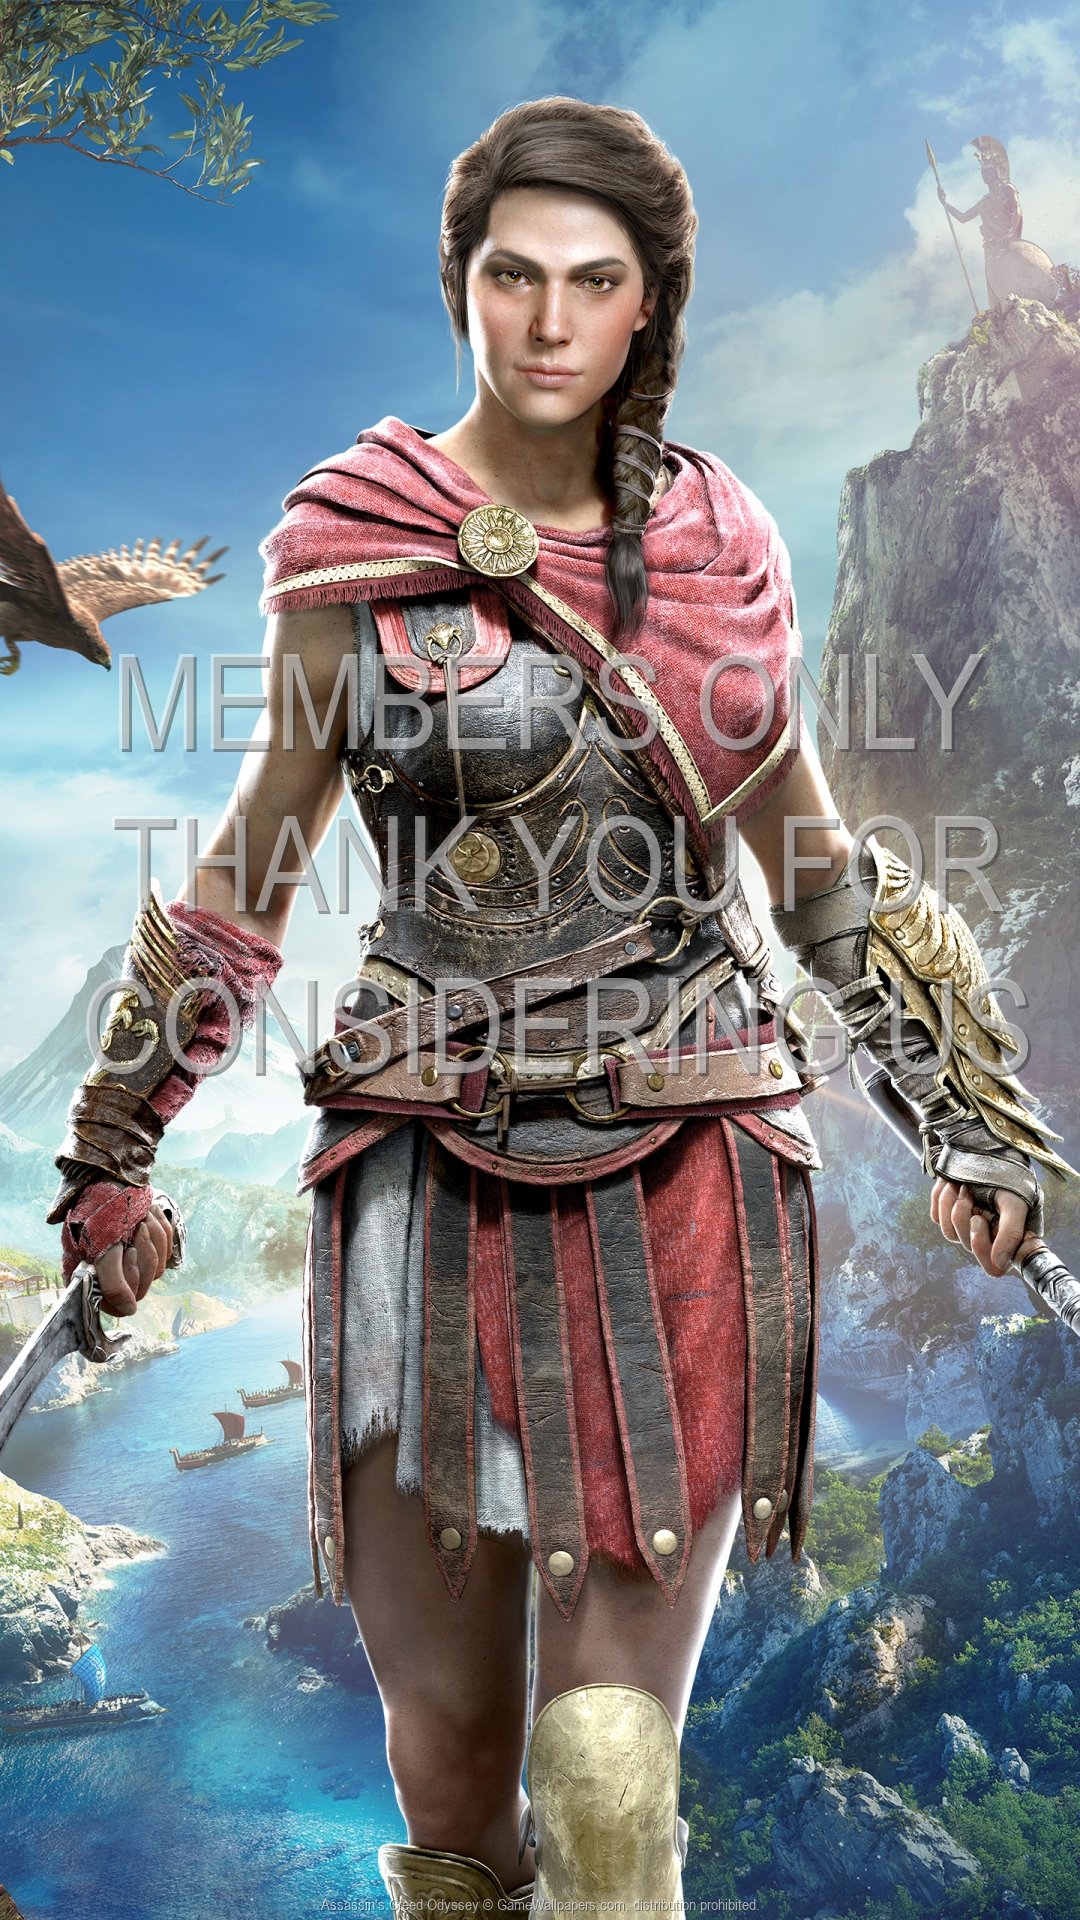 Assassin's Creed: Odyssey 1920x1080 Mobiele achtergrond 04